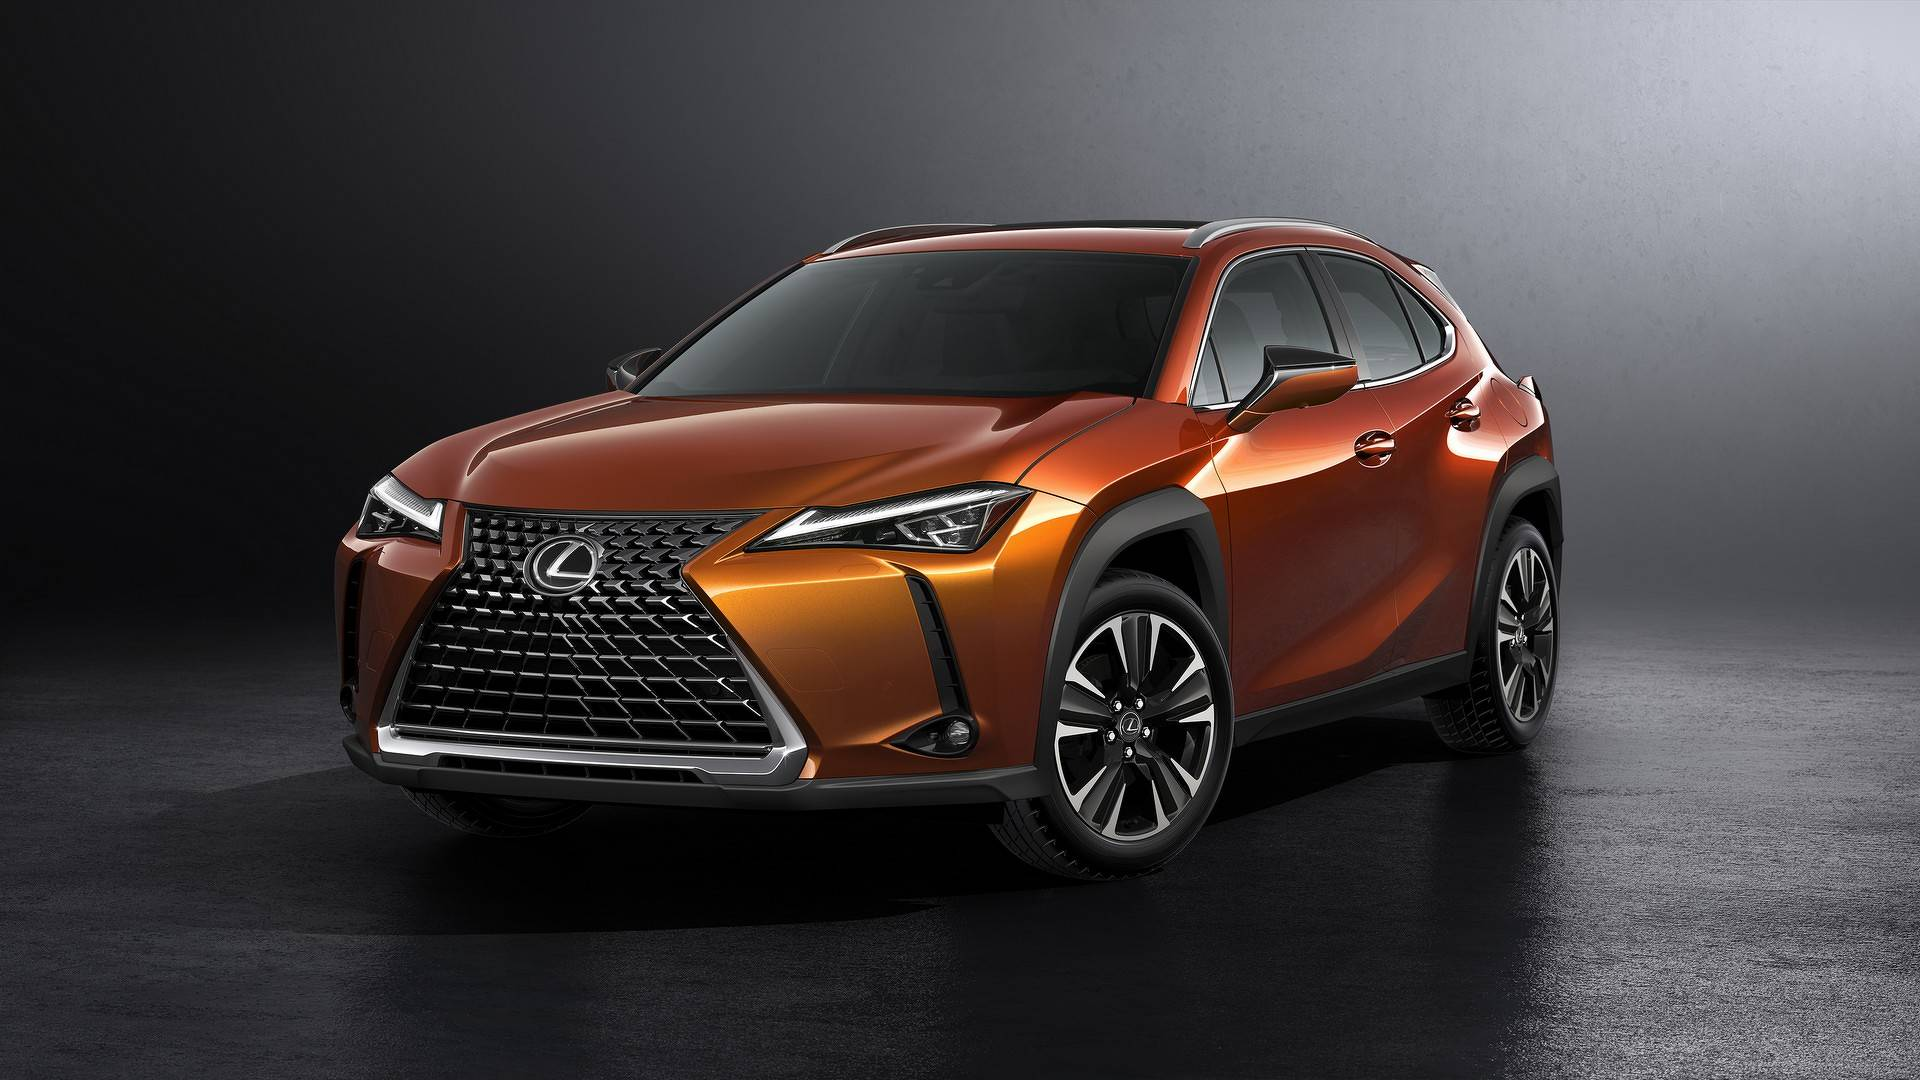 Ux Plug Lexus Won T Offer A Car Under 30 000 But It Could Build An Ev